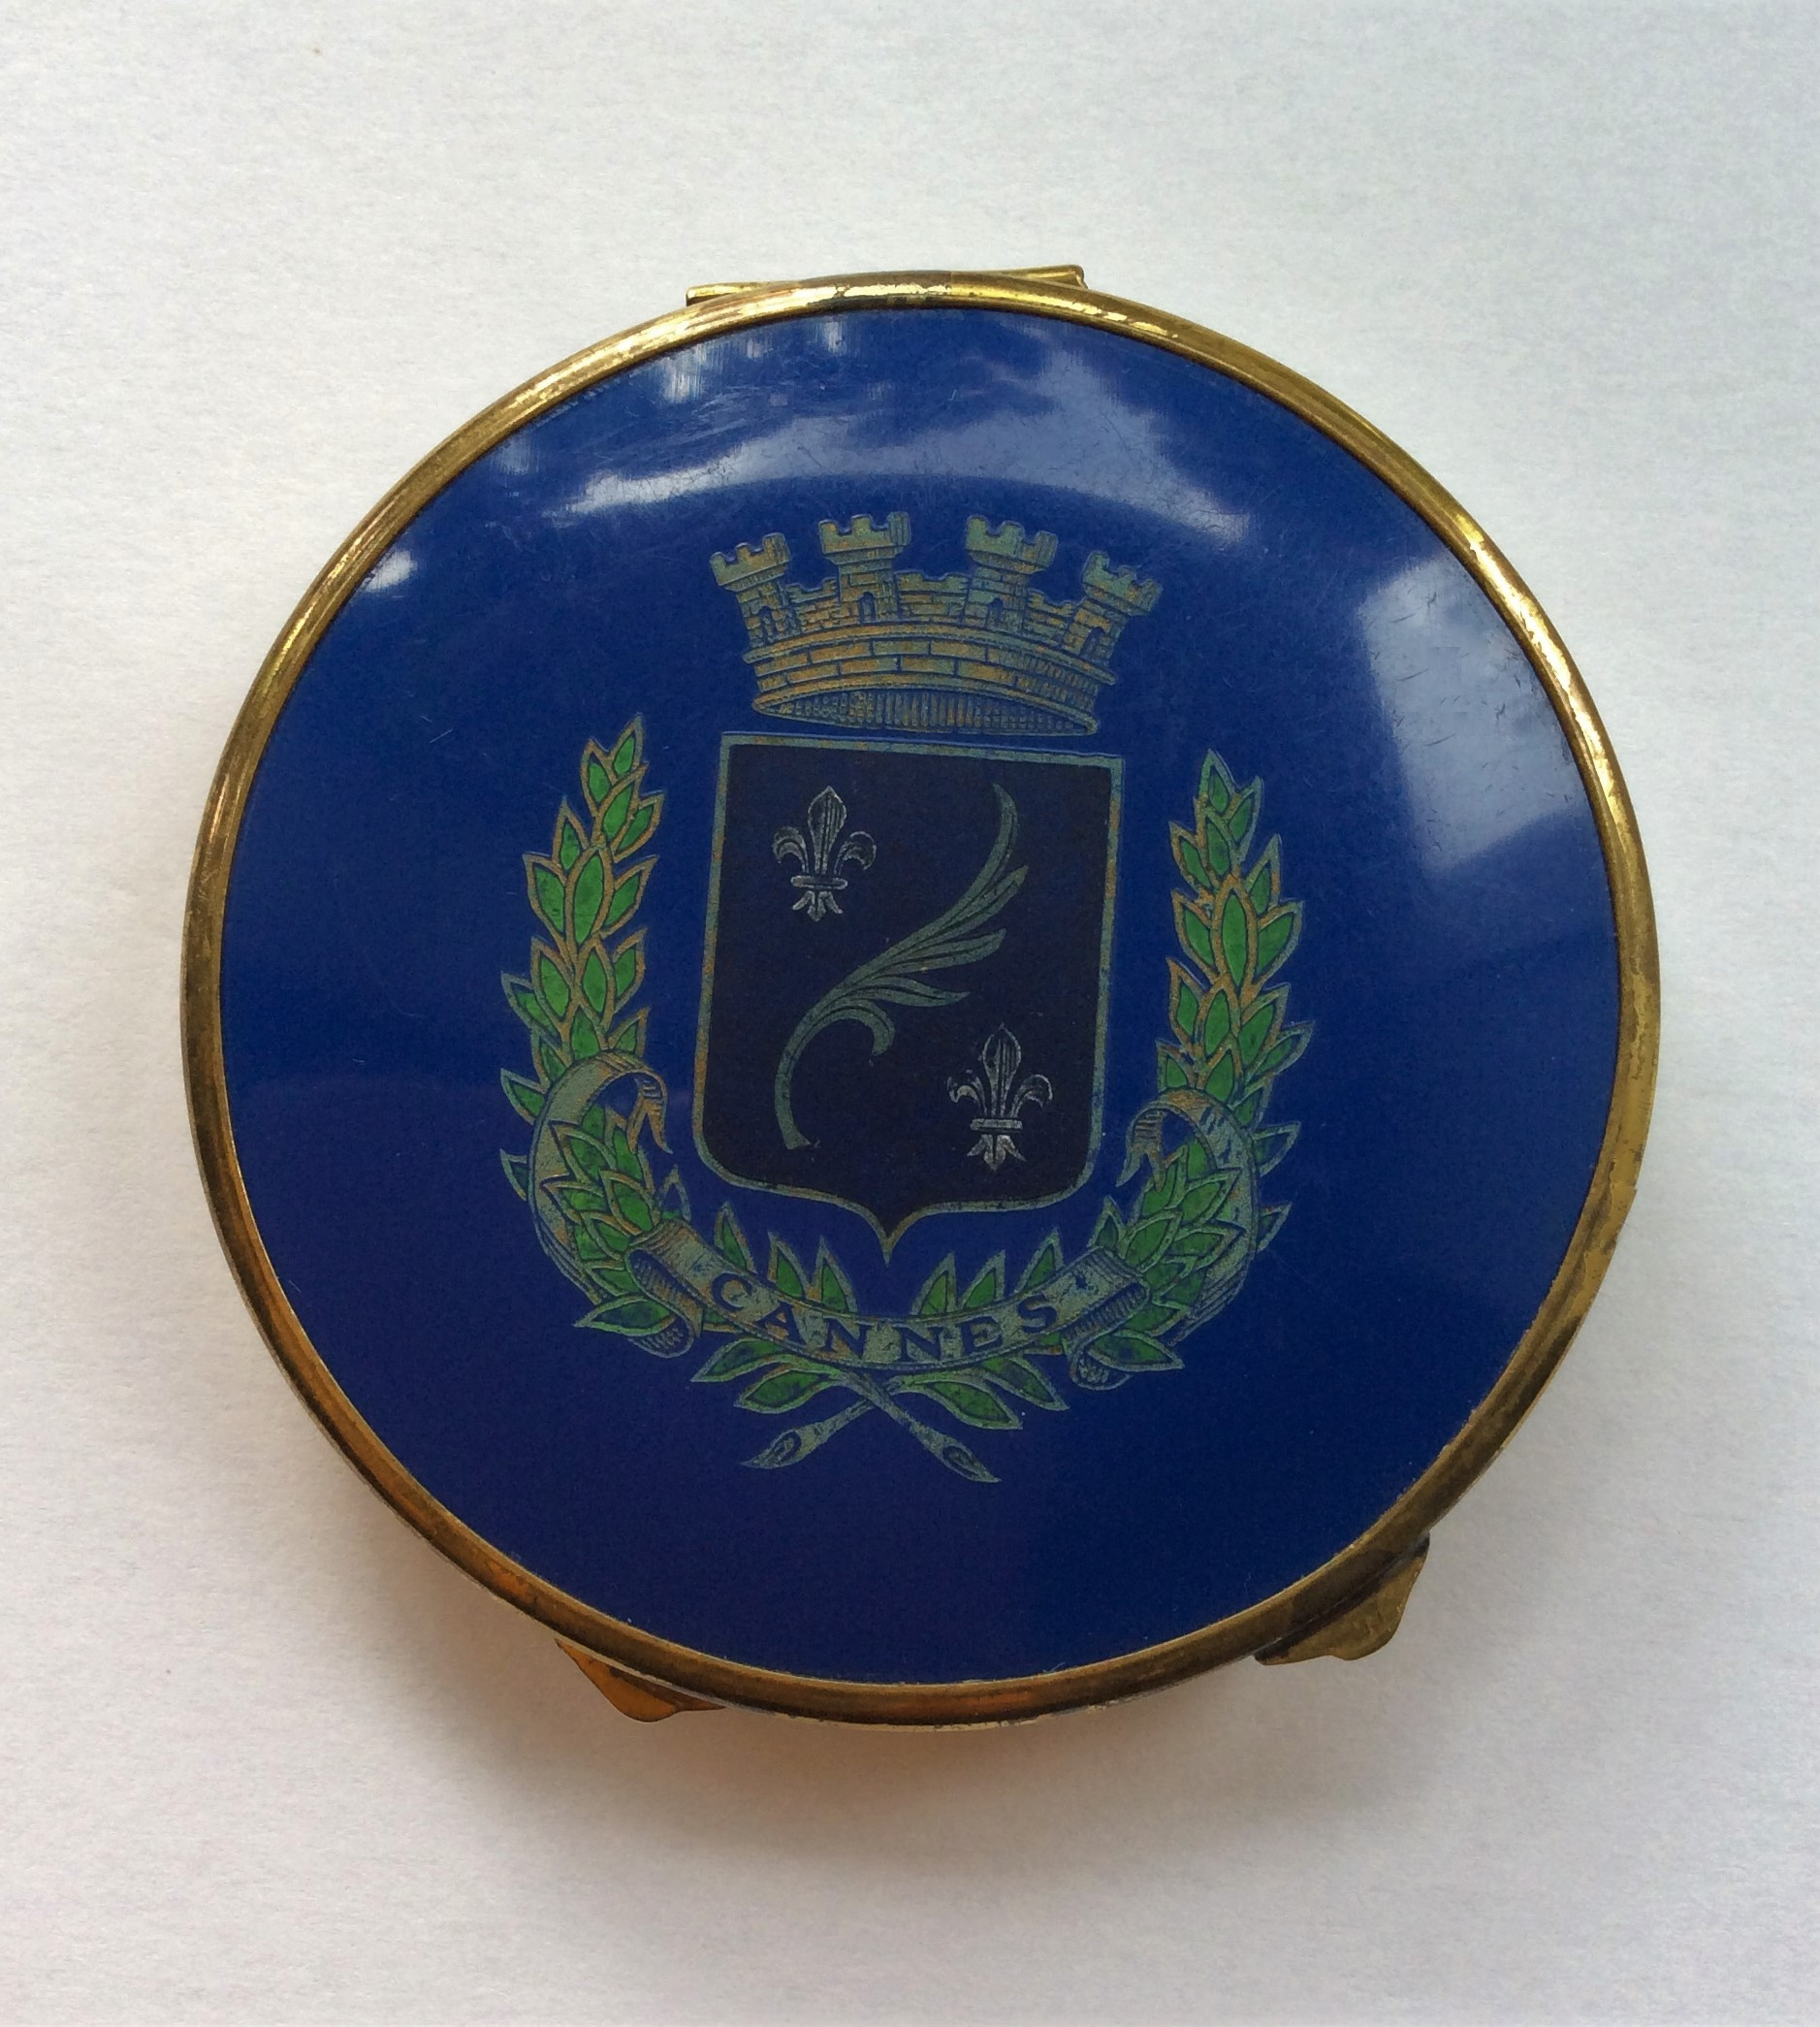 Rare Vintage c.50s French Cannes Coat of Arms Powder Compact